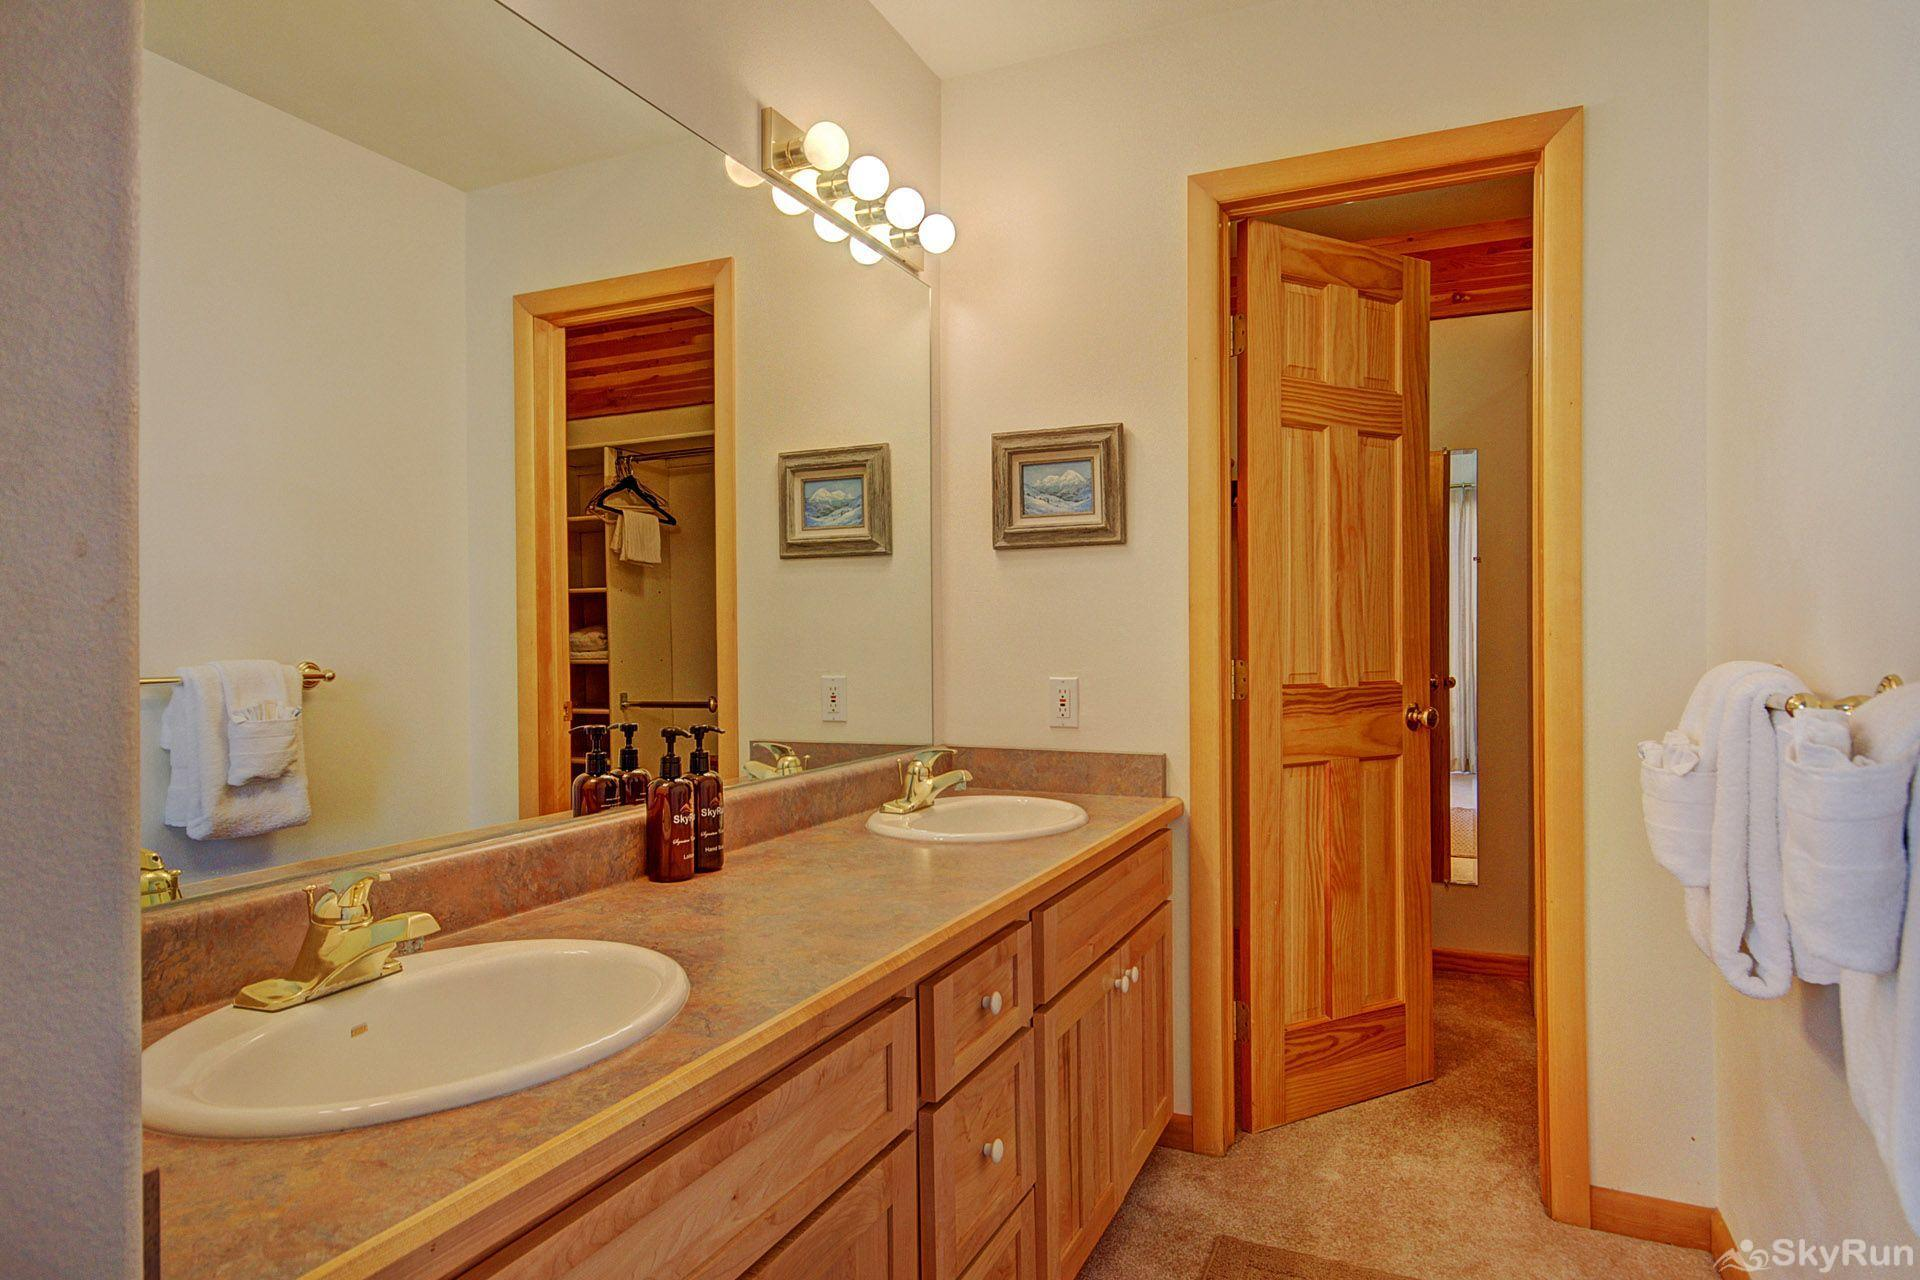 Sauterne Sanctuary 3BR 3BA Master Bathroom